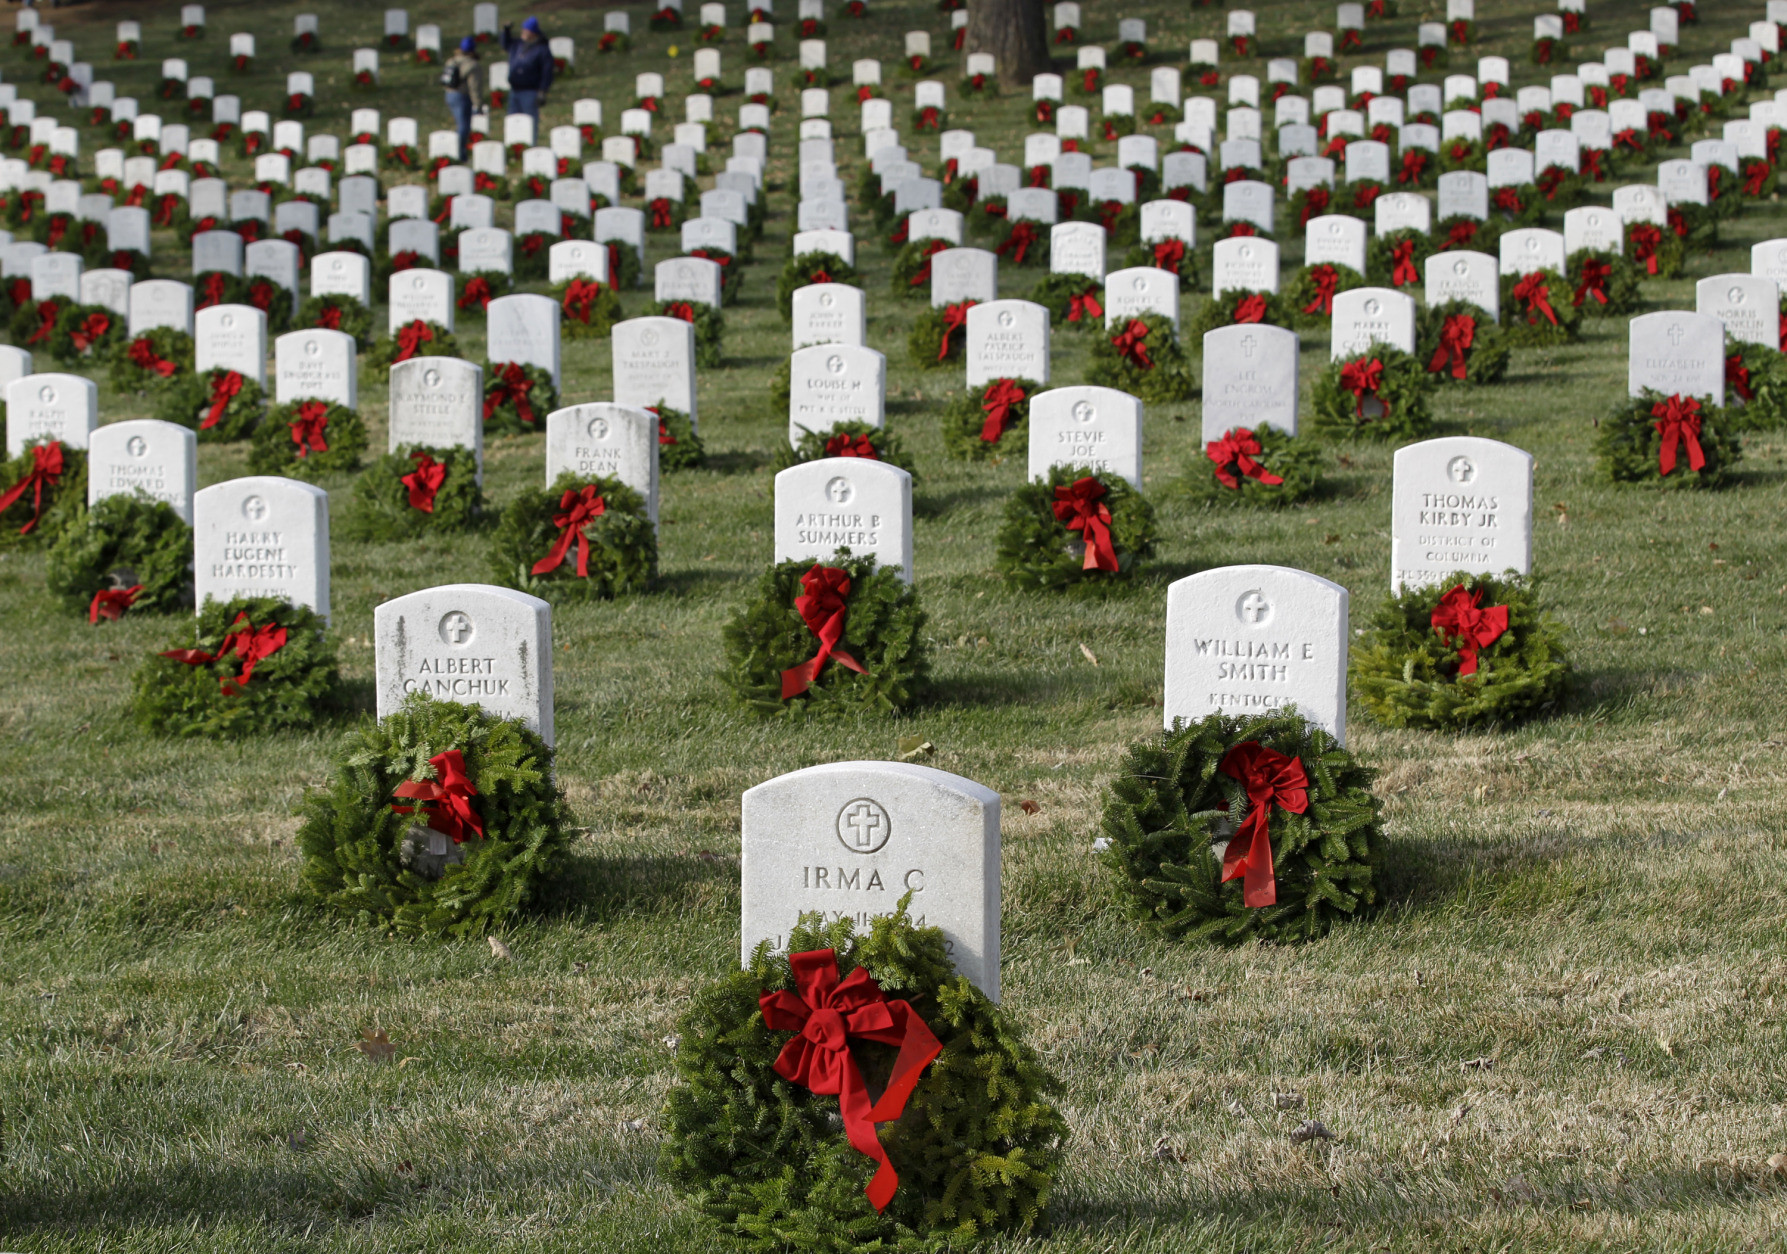 Volunteers Needed For Annual Wreath Laying At Arlington